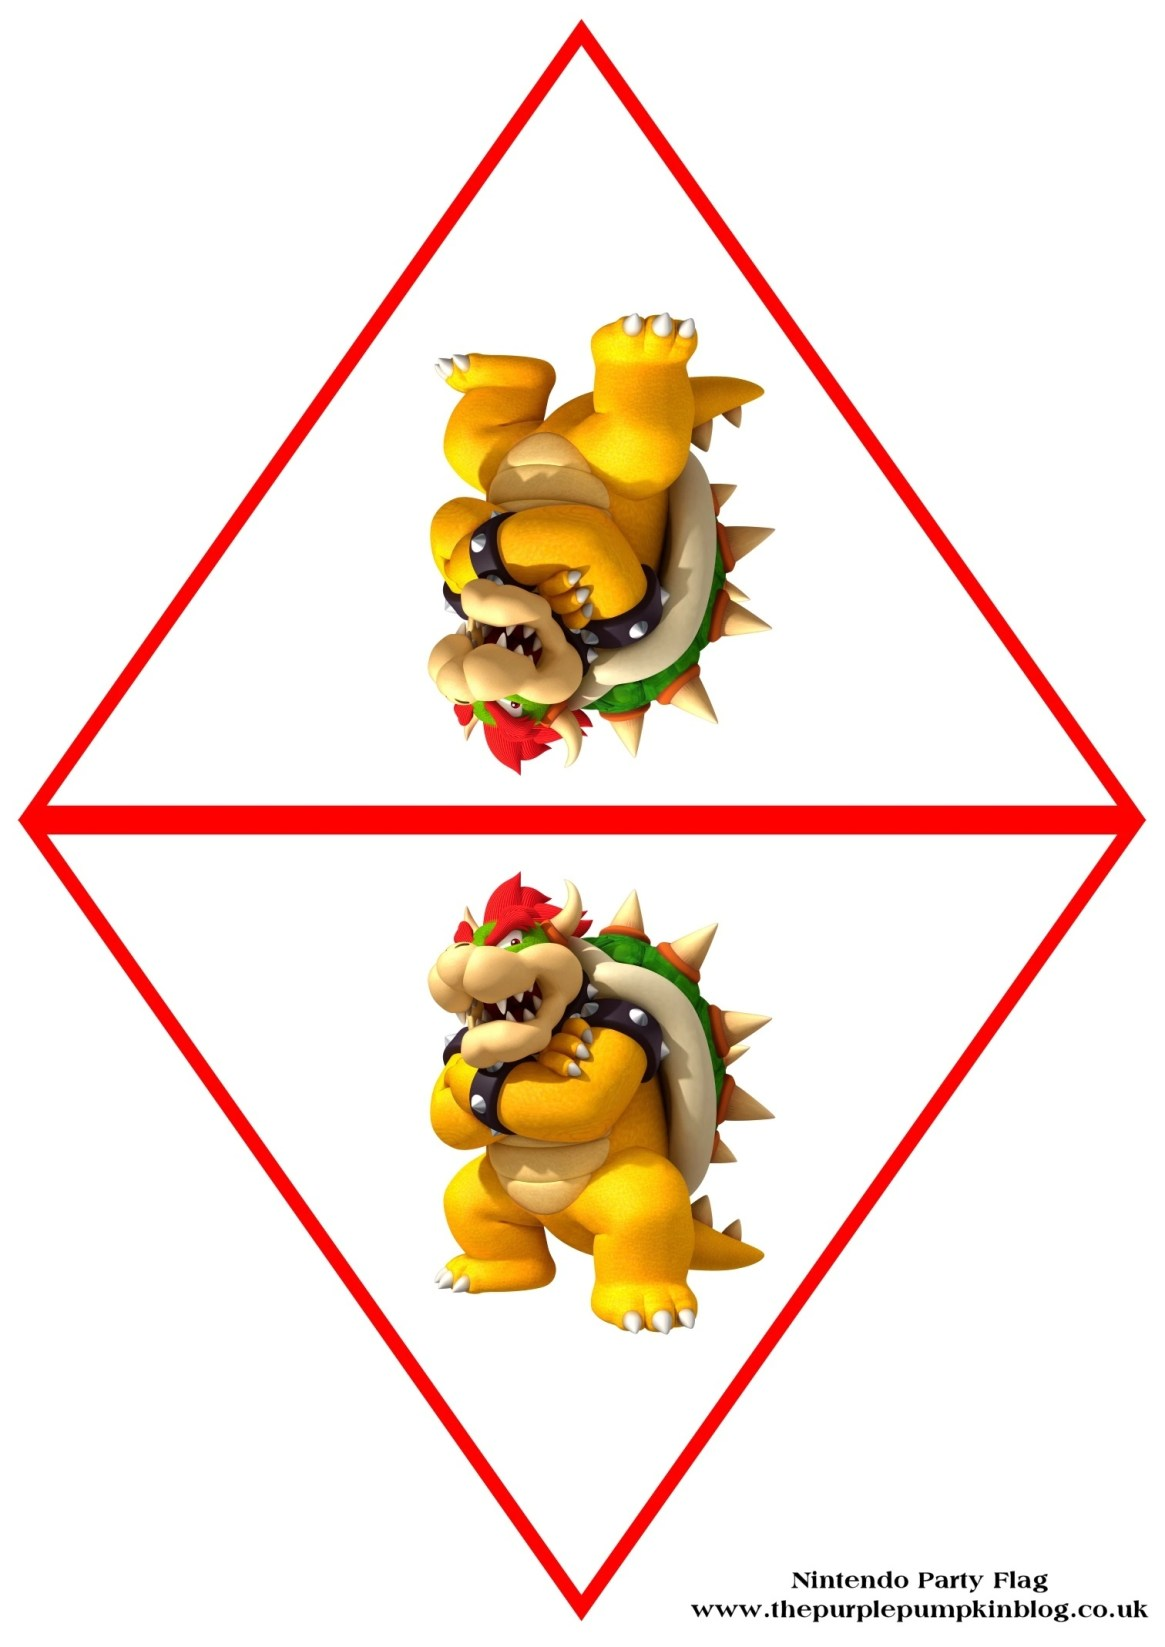 nintendo-party-flag-bowser